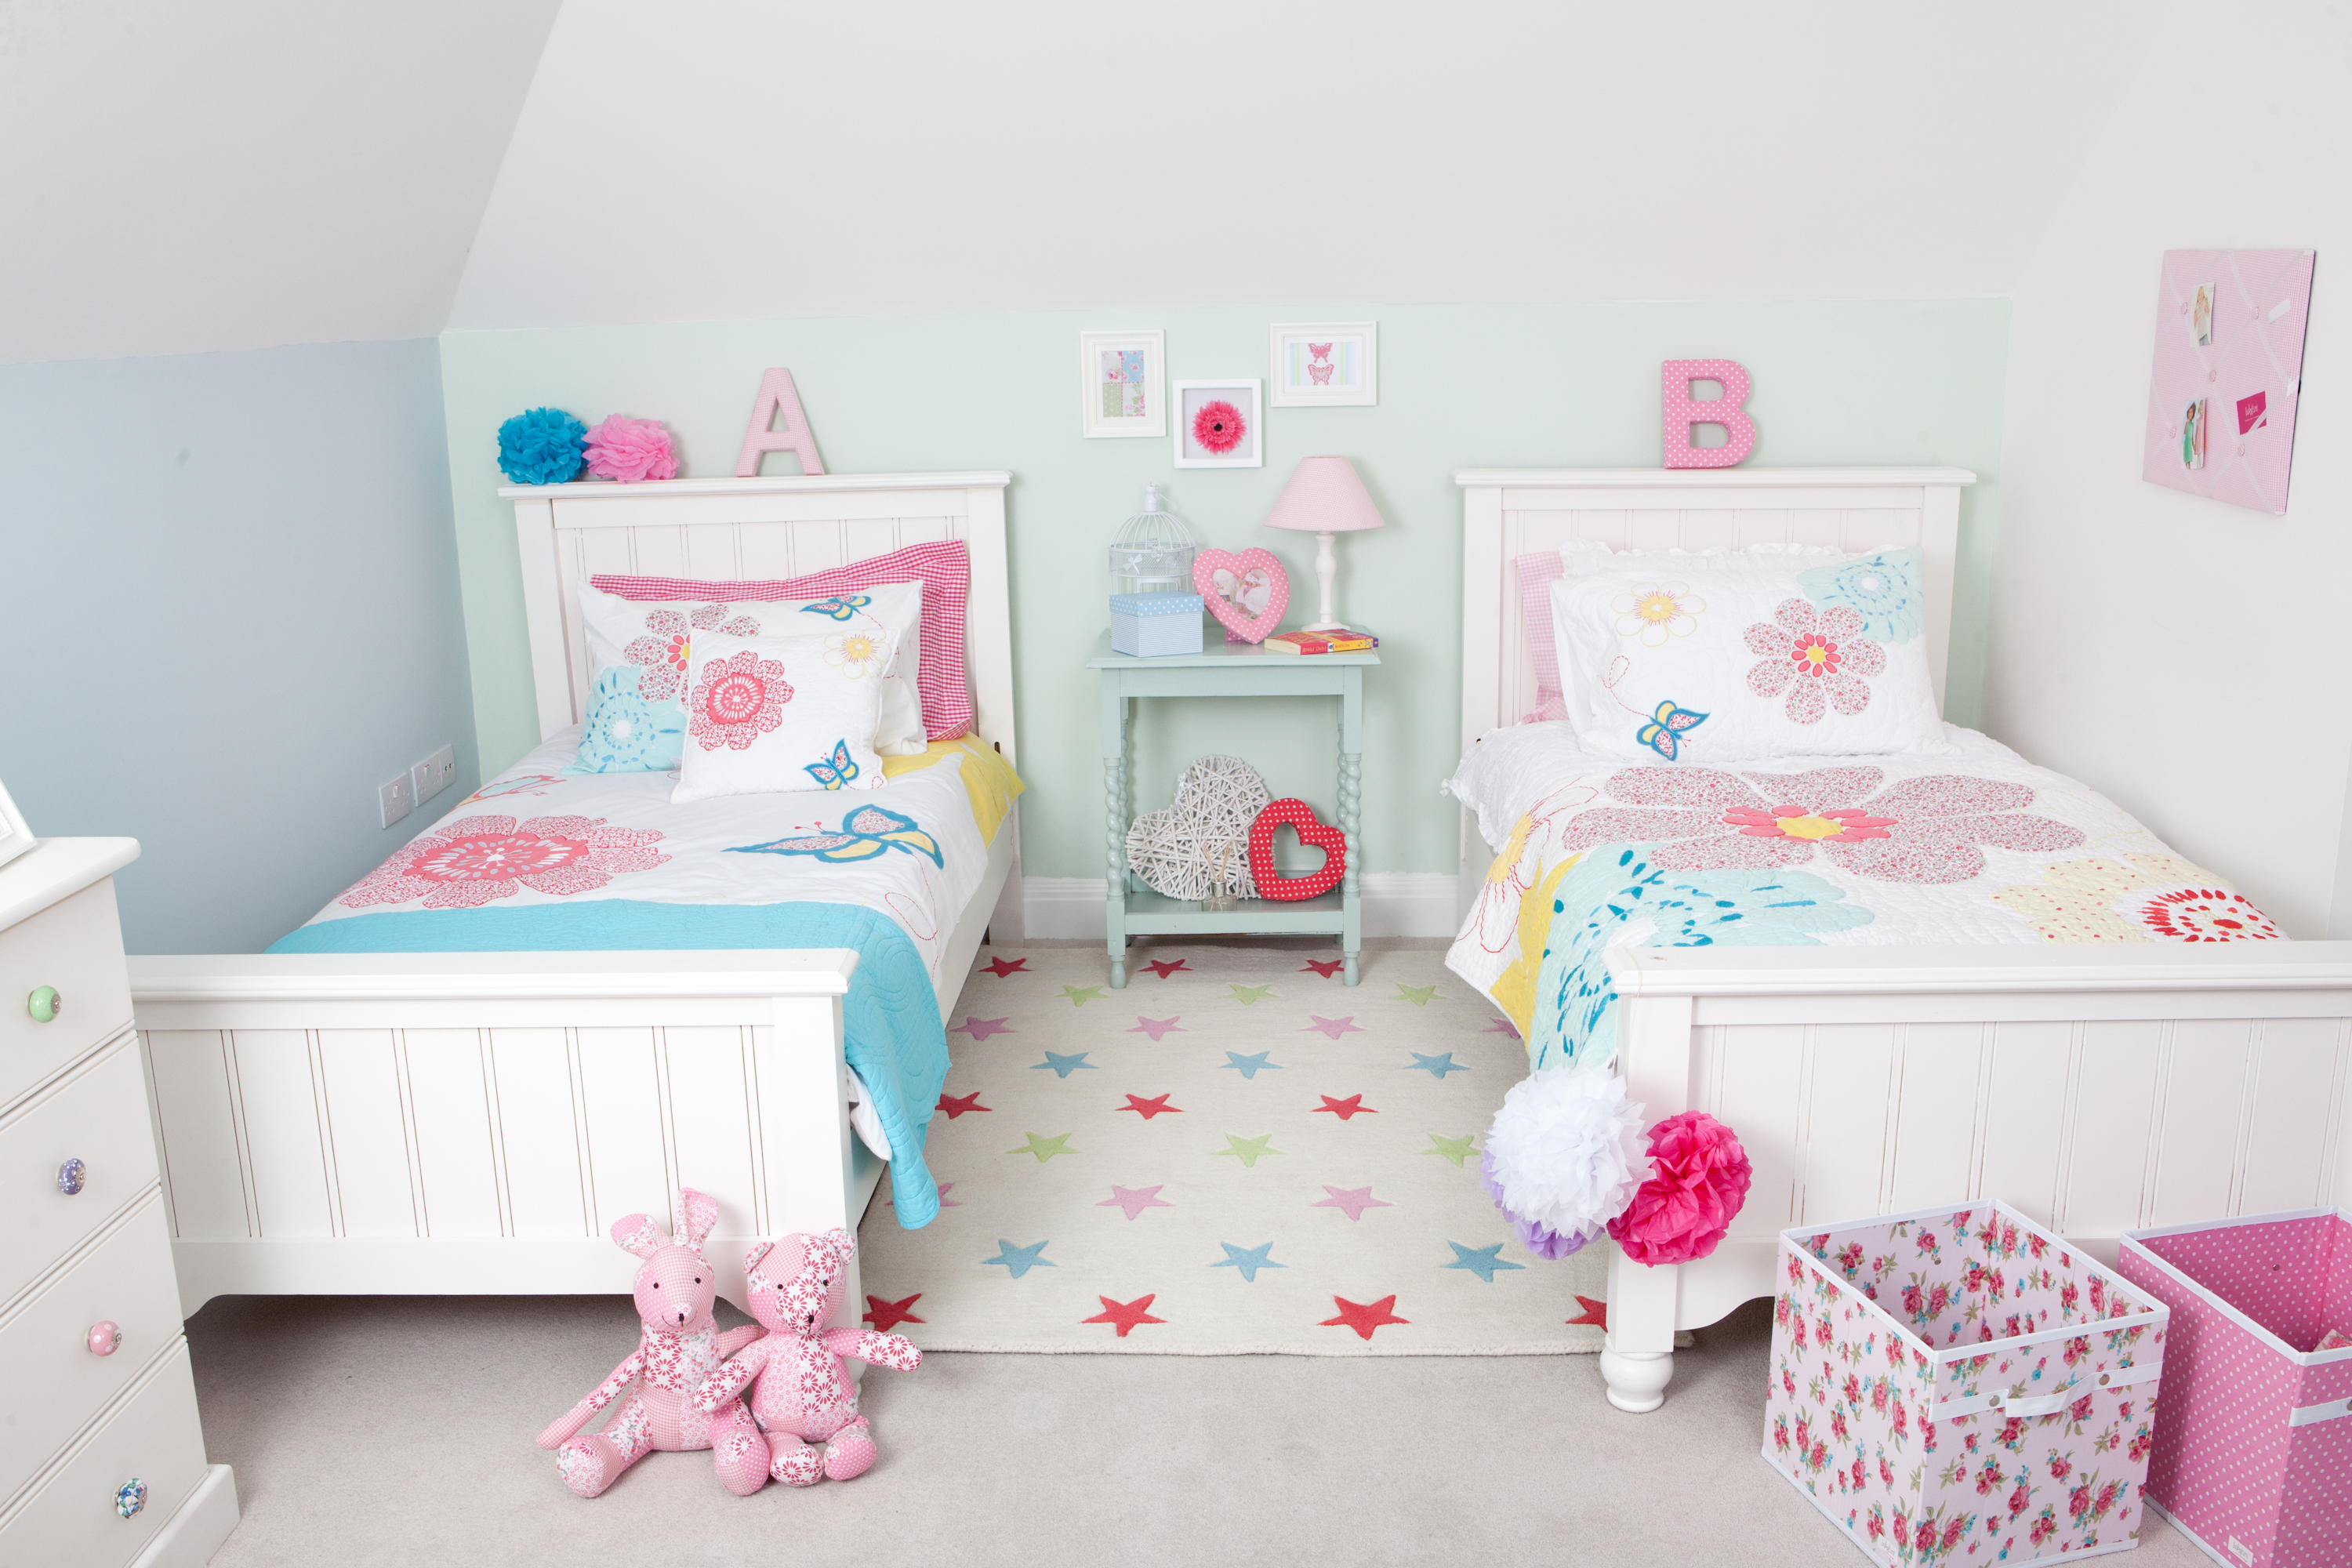 Toddler Twin Beds for Kids' Room